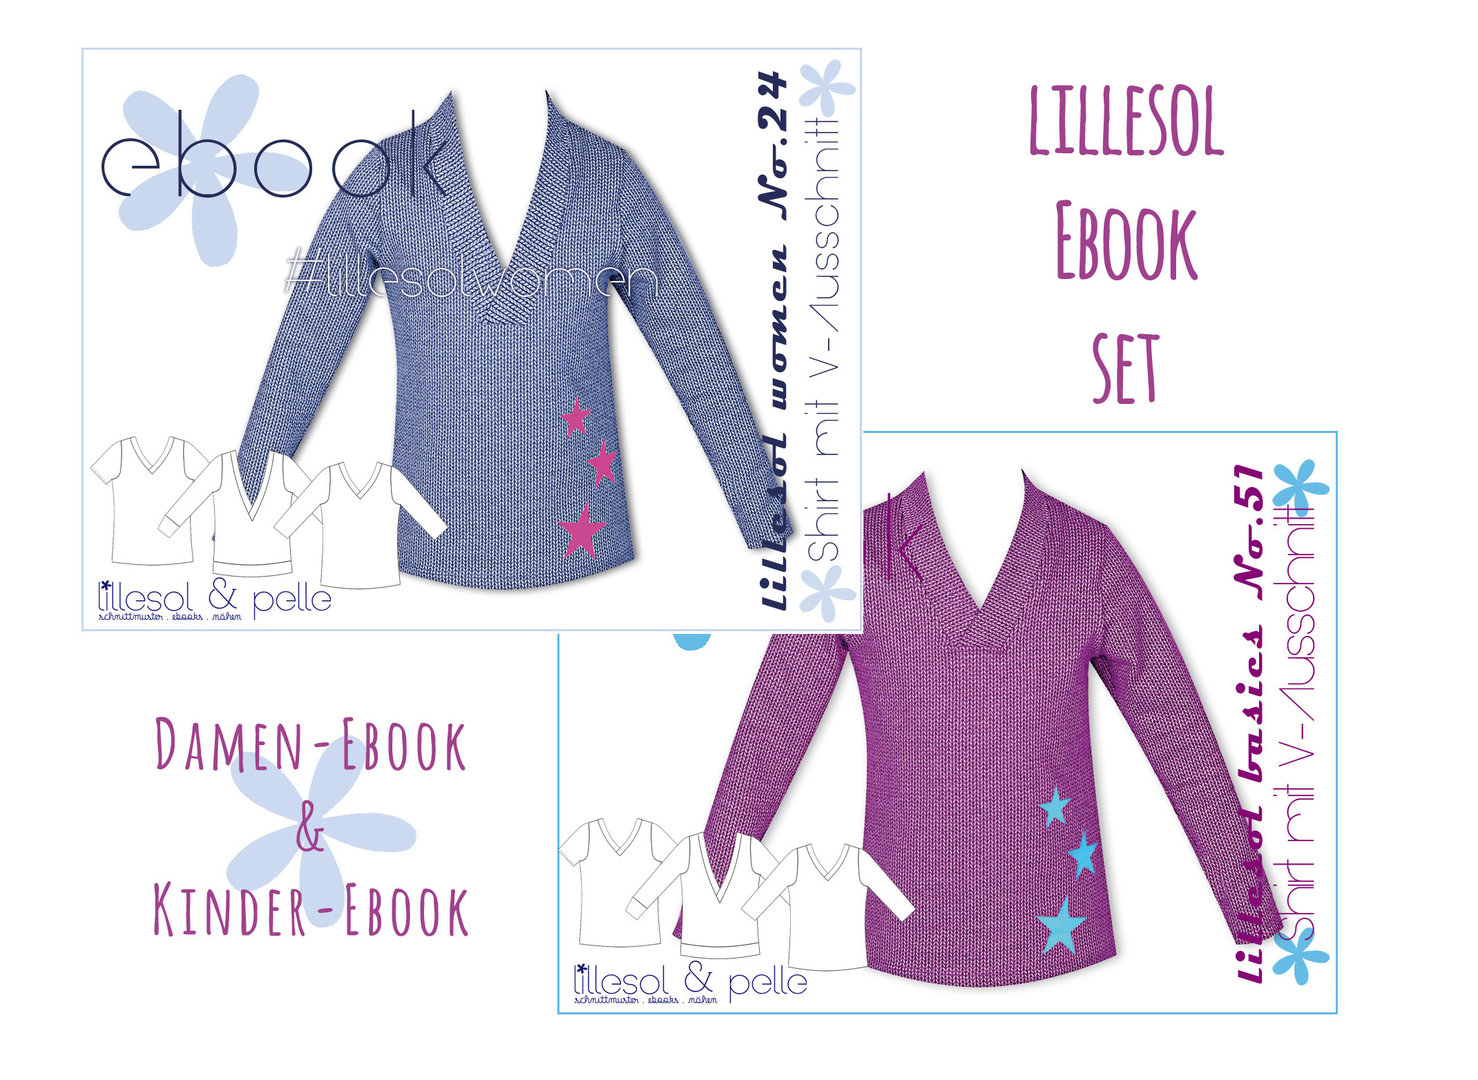 lillesol ebook set basics No.51 und women No.24  * mit Video-Nähanleitung *